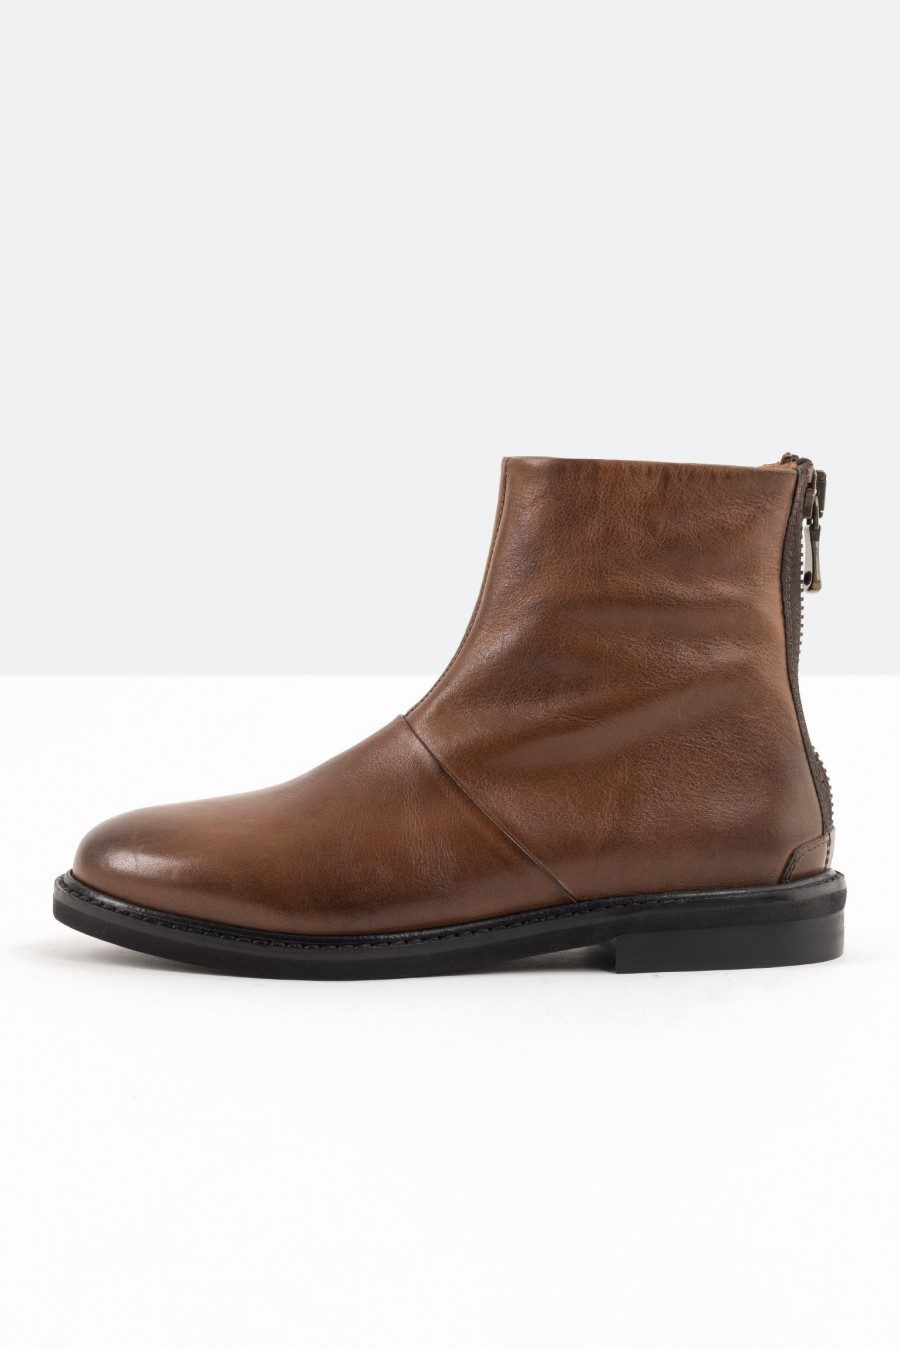 Tobacco brown flat boots